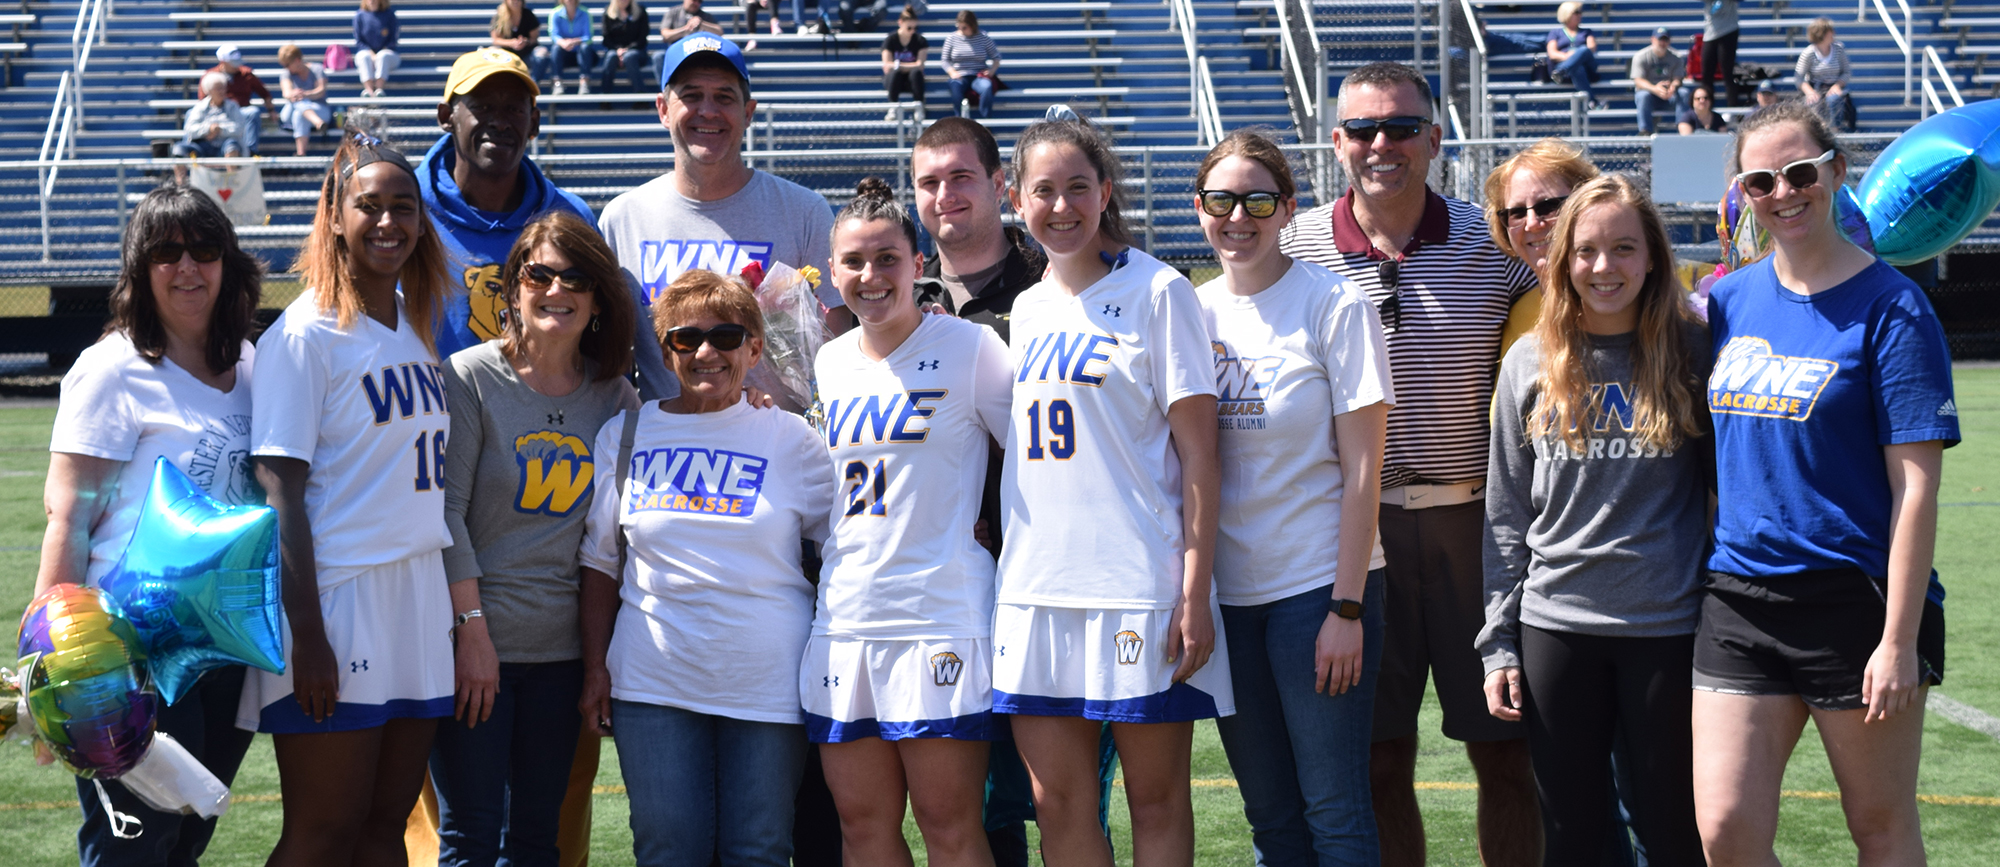 Seniors Janell Lewis, Audrey Zaborowski & Kristen Breen were honored before the start of Saturday's game. (Photo by Rachael Margossian)